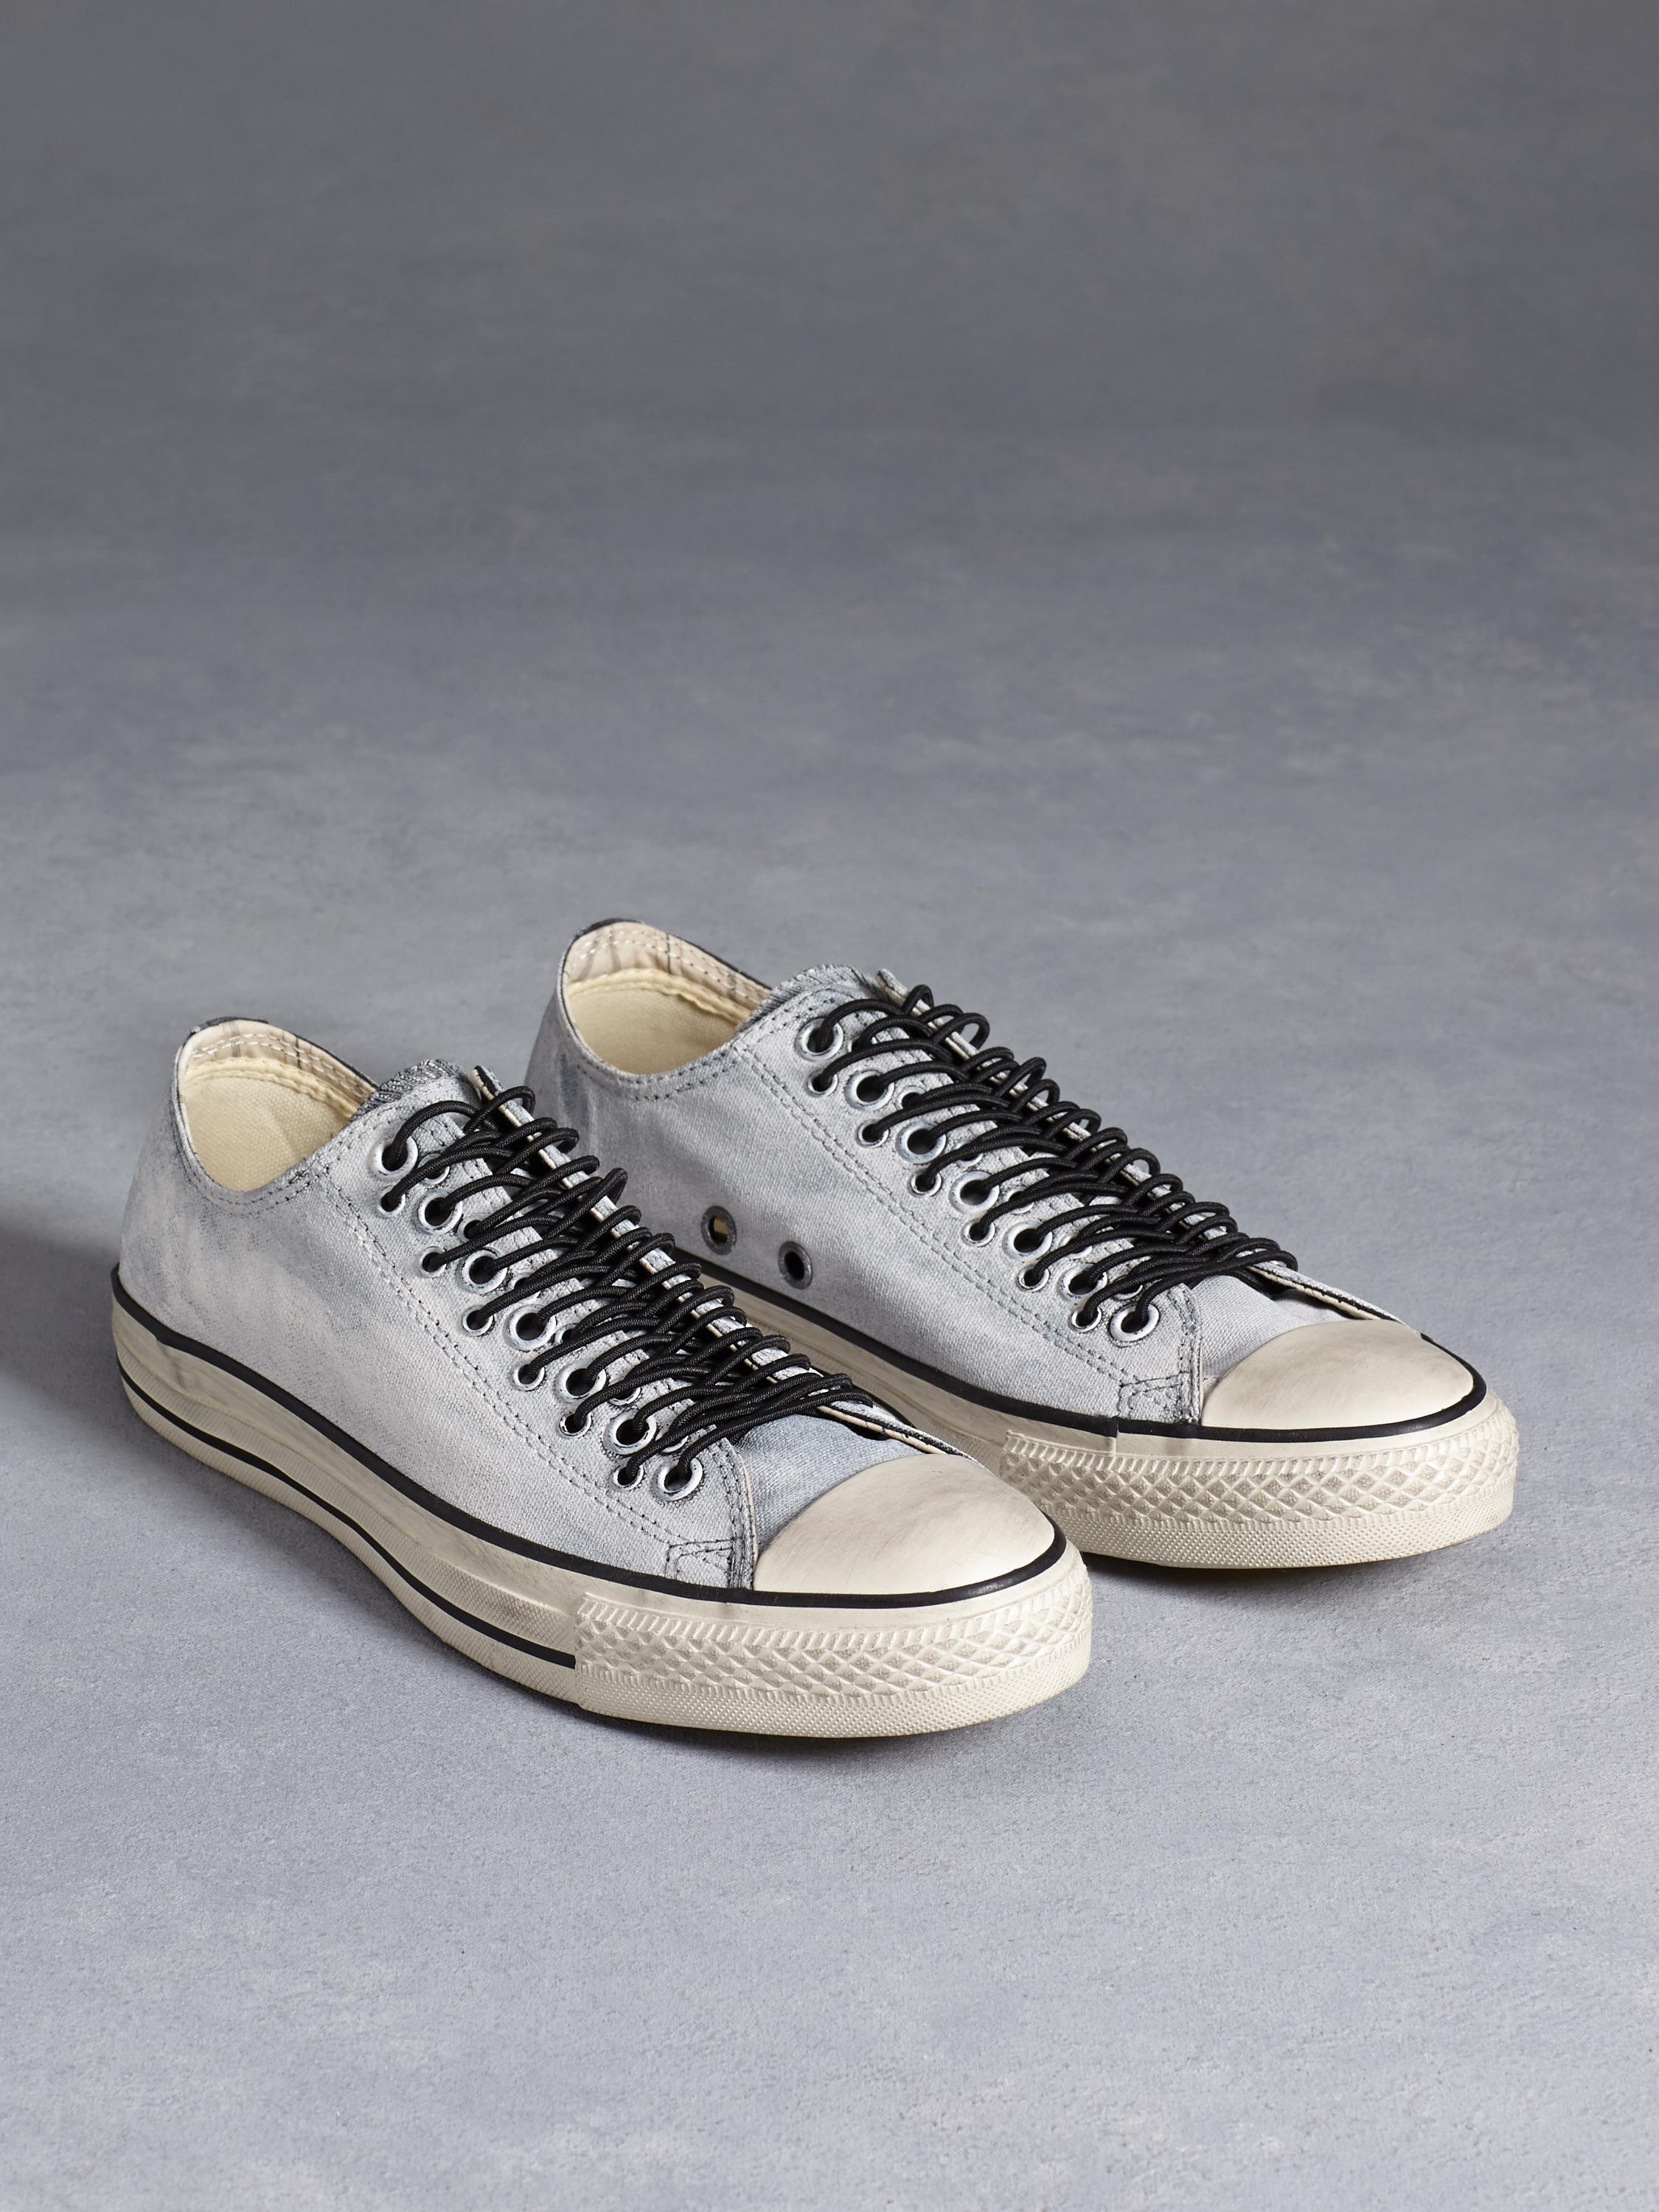 9c2162ddb365 ... switzerland painted canvas multi eyelet all star john varvatos 1e479  35e68